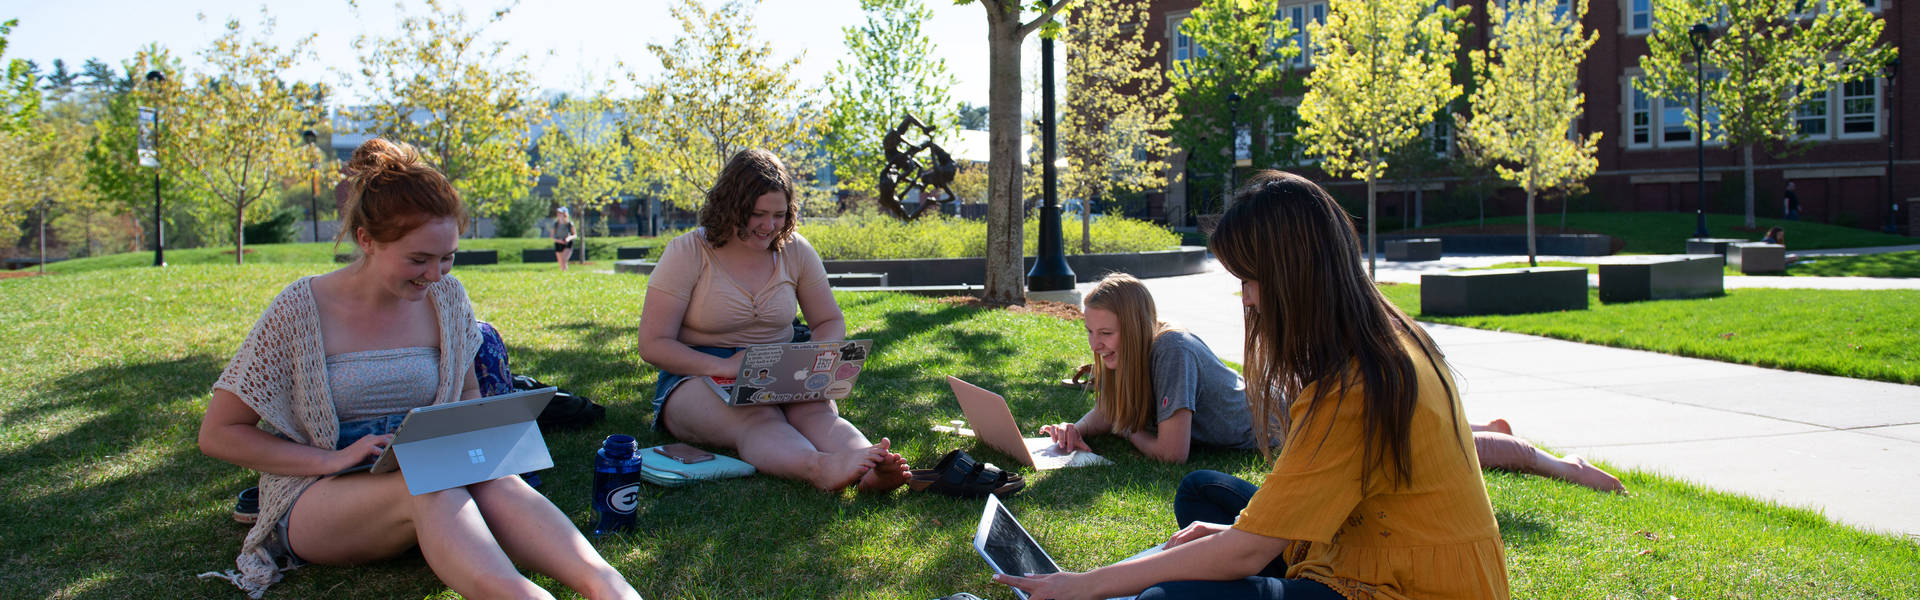 Four students are gathered in the grass, smiling and studying.